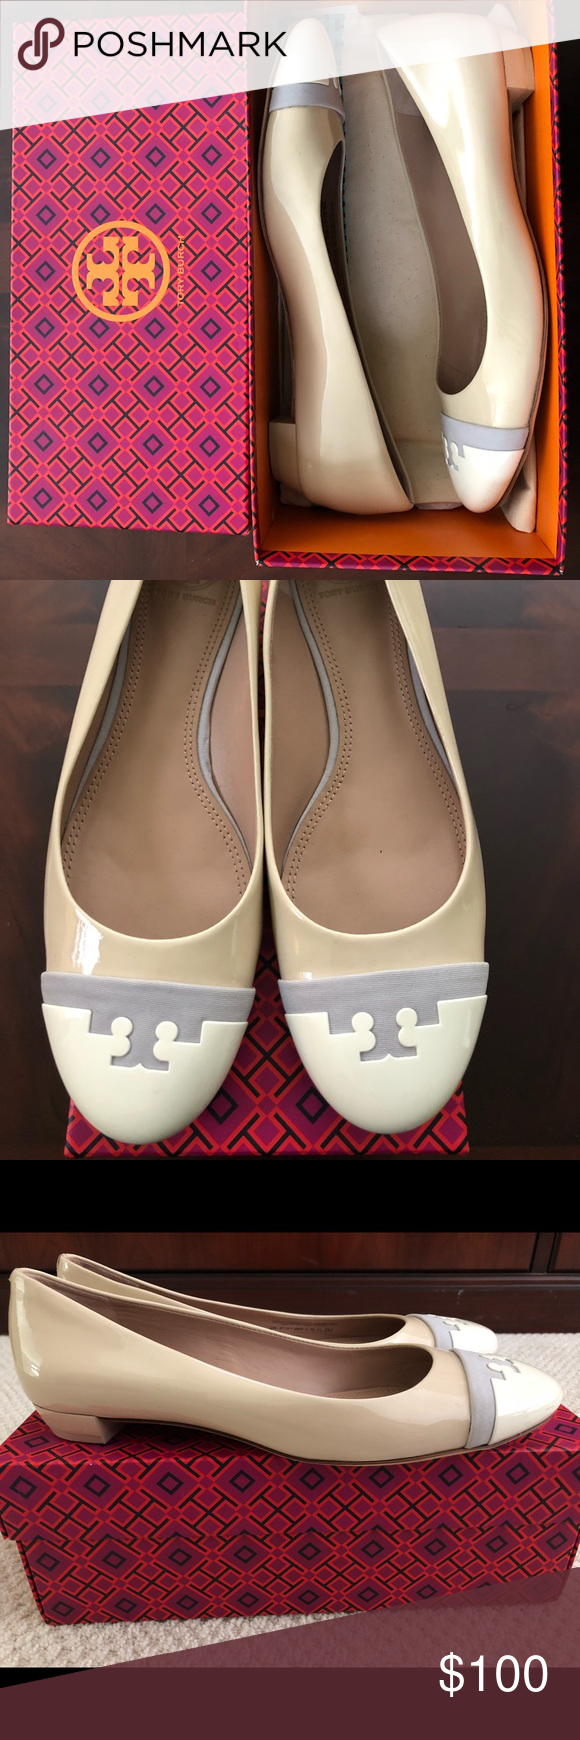 d83a3cda48bd Tory Burch Gabrielle Flat Dulce De Leche   Dusk Patent leather flats  featuring iconic Tory Burch emblem. Only worn twice and in great condition.